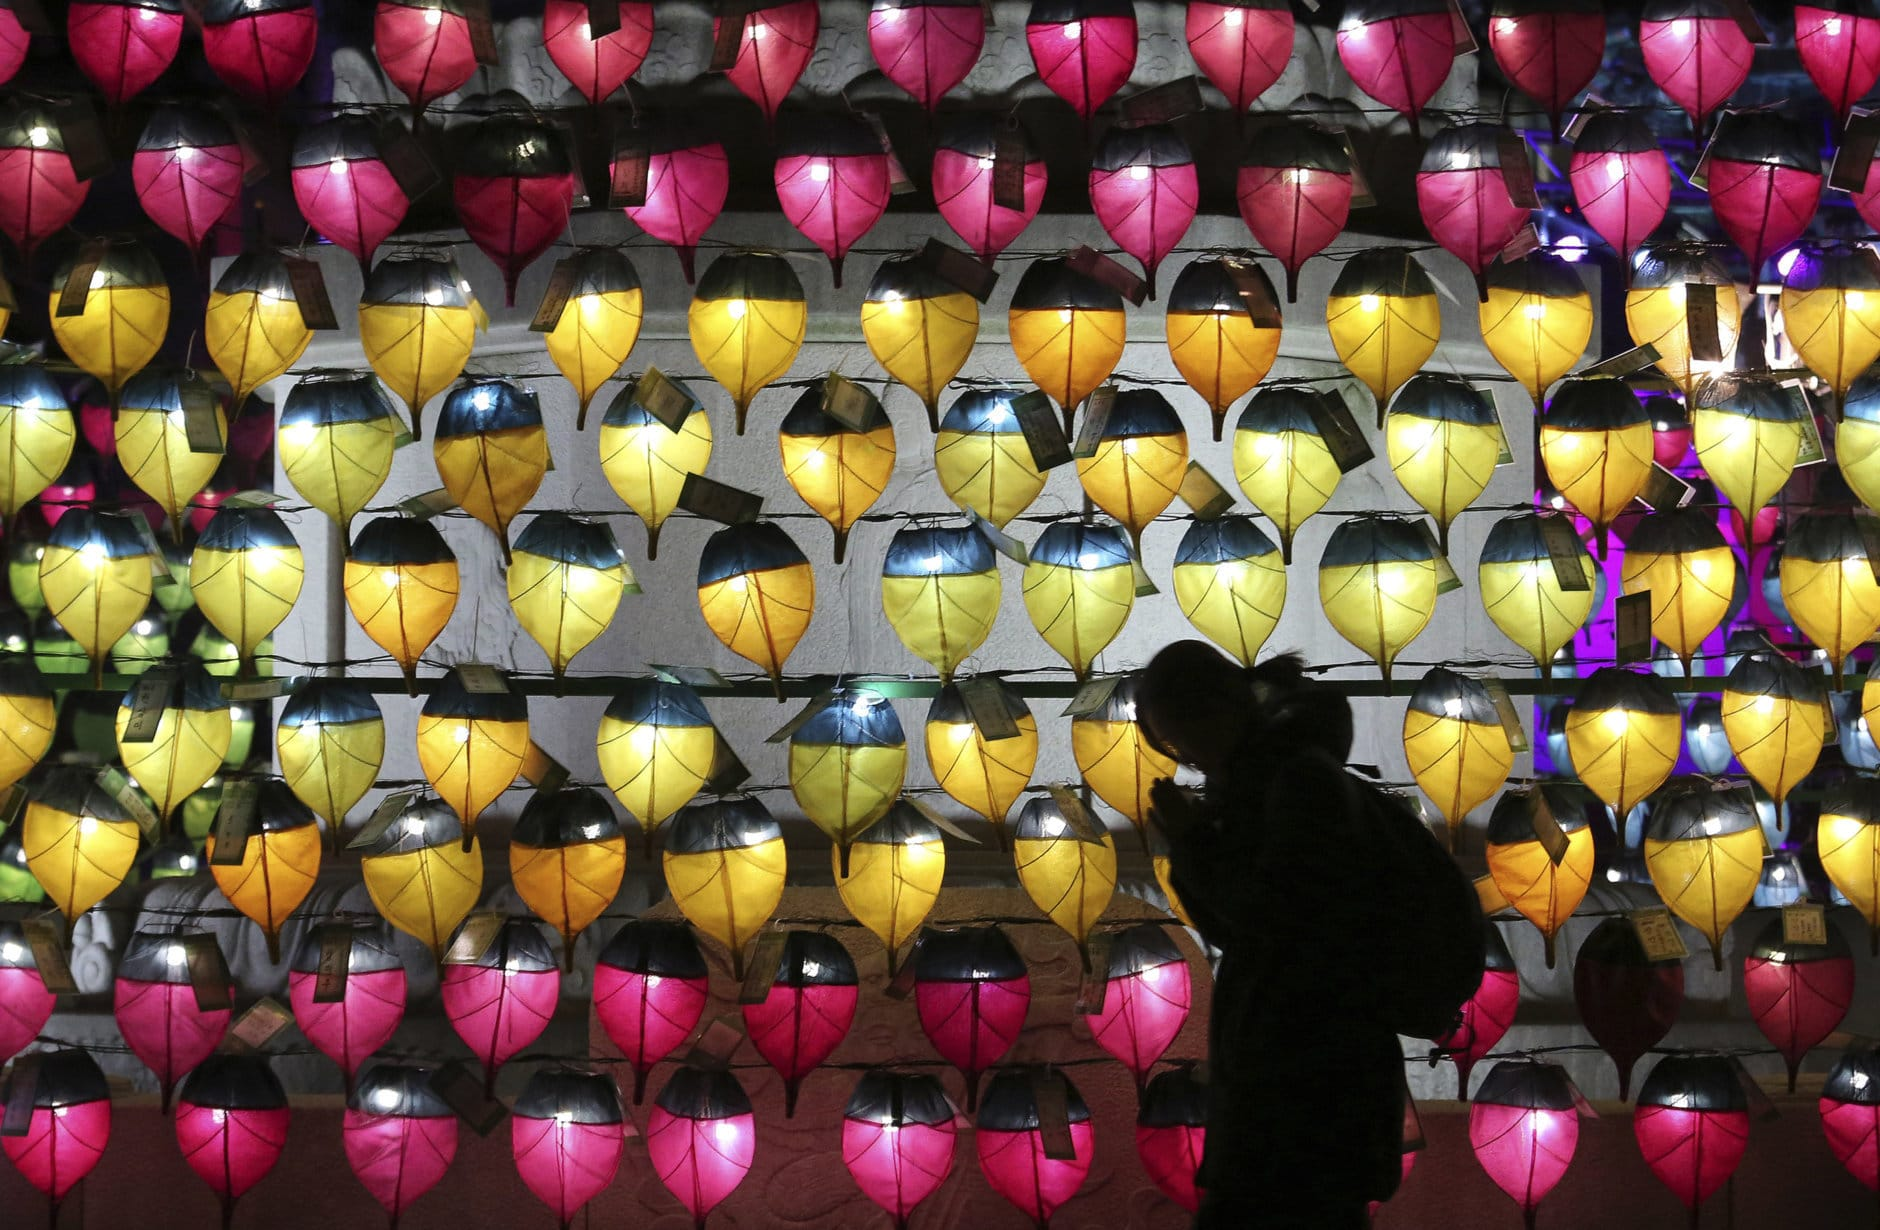 A woman prays in front of a wall of lanterns to celebrate the New Year at the Jogyesa Buddhist temple in Seoul, South Korea, Monday, Dec. 31, 2018. (AP Photo/Ahn Young-joon)